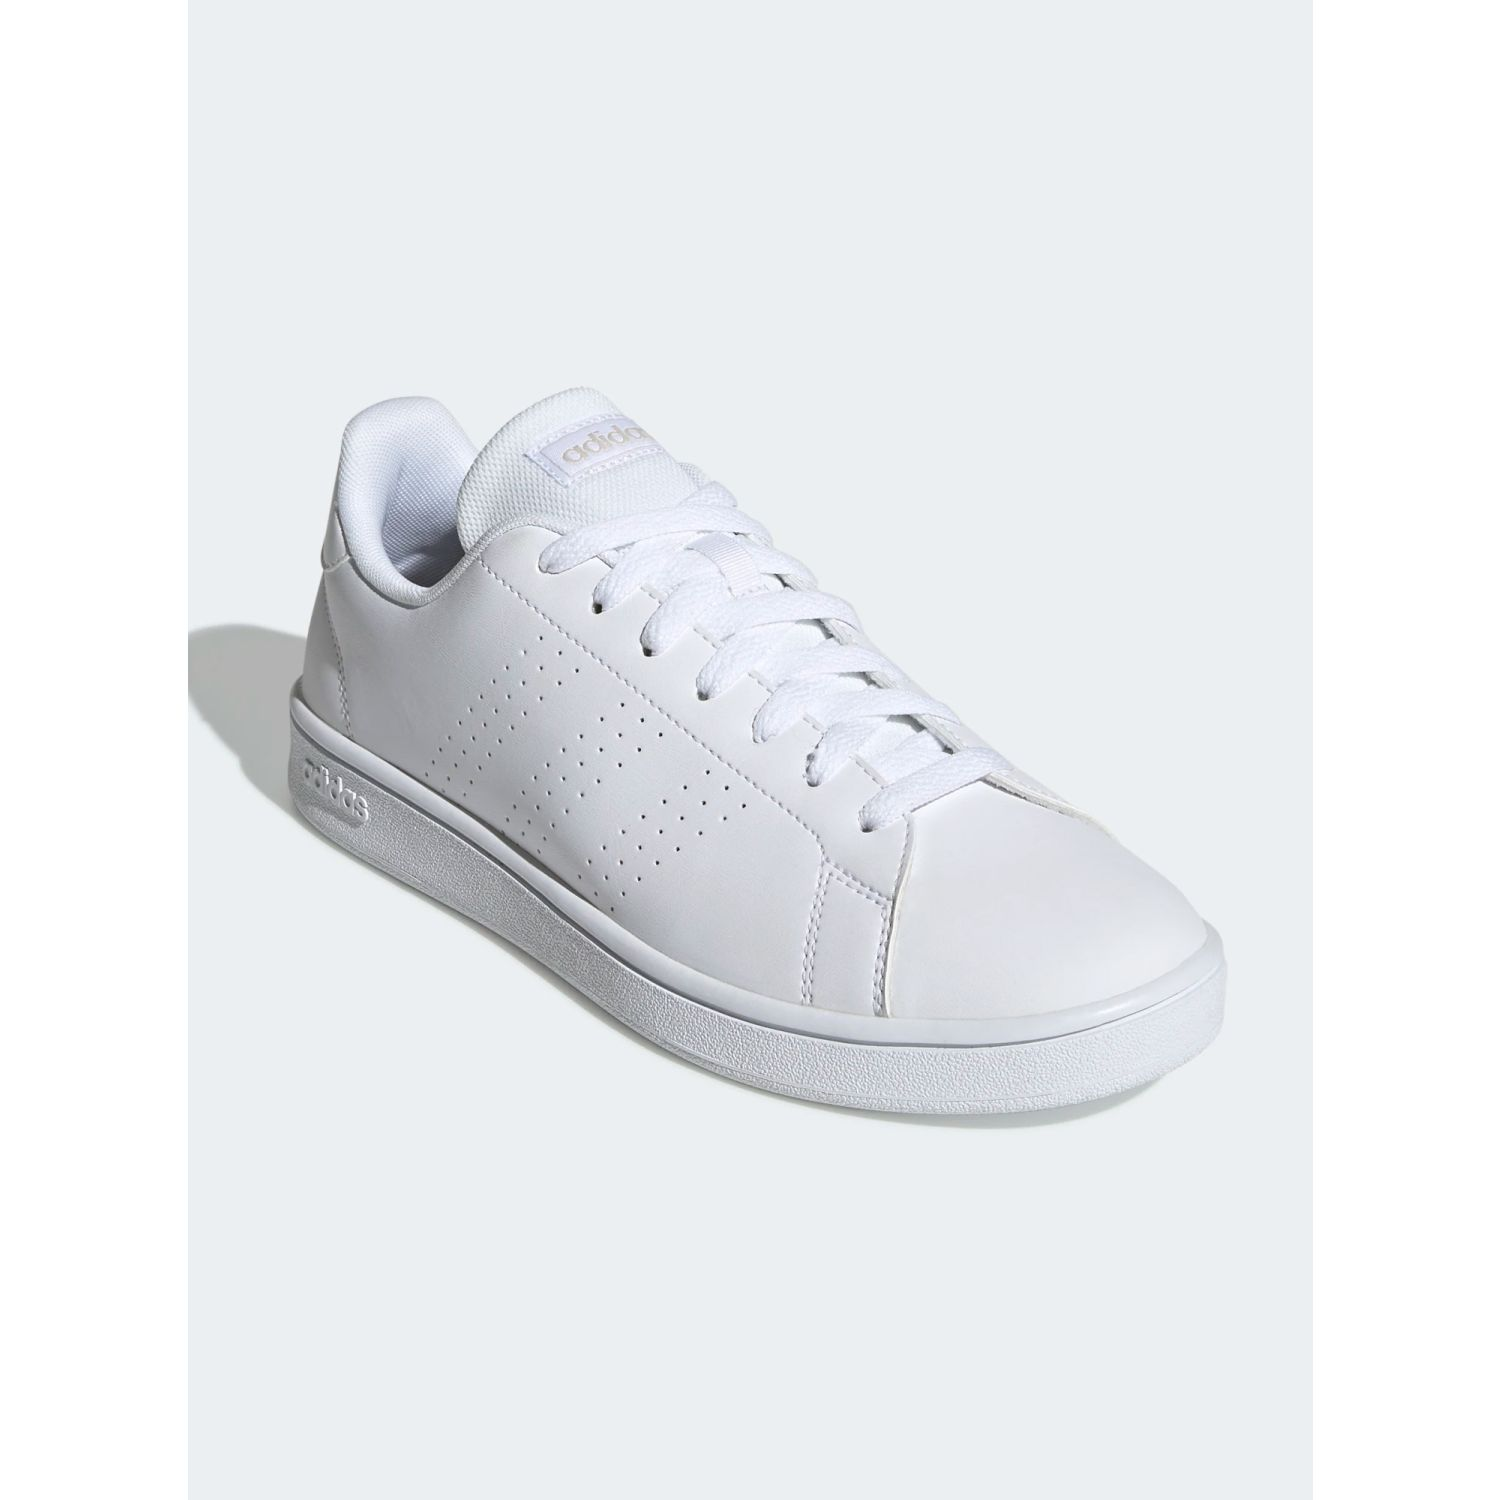 Adidas advantage base Blanco Walking